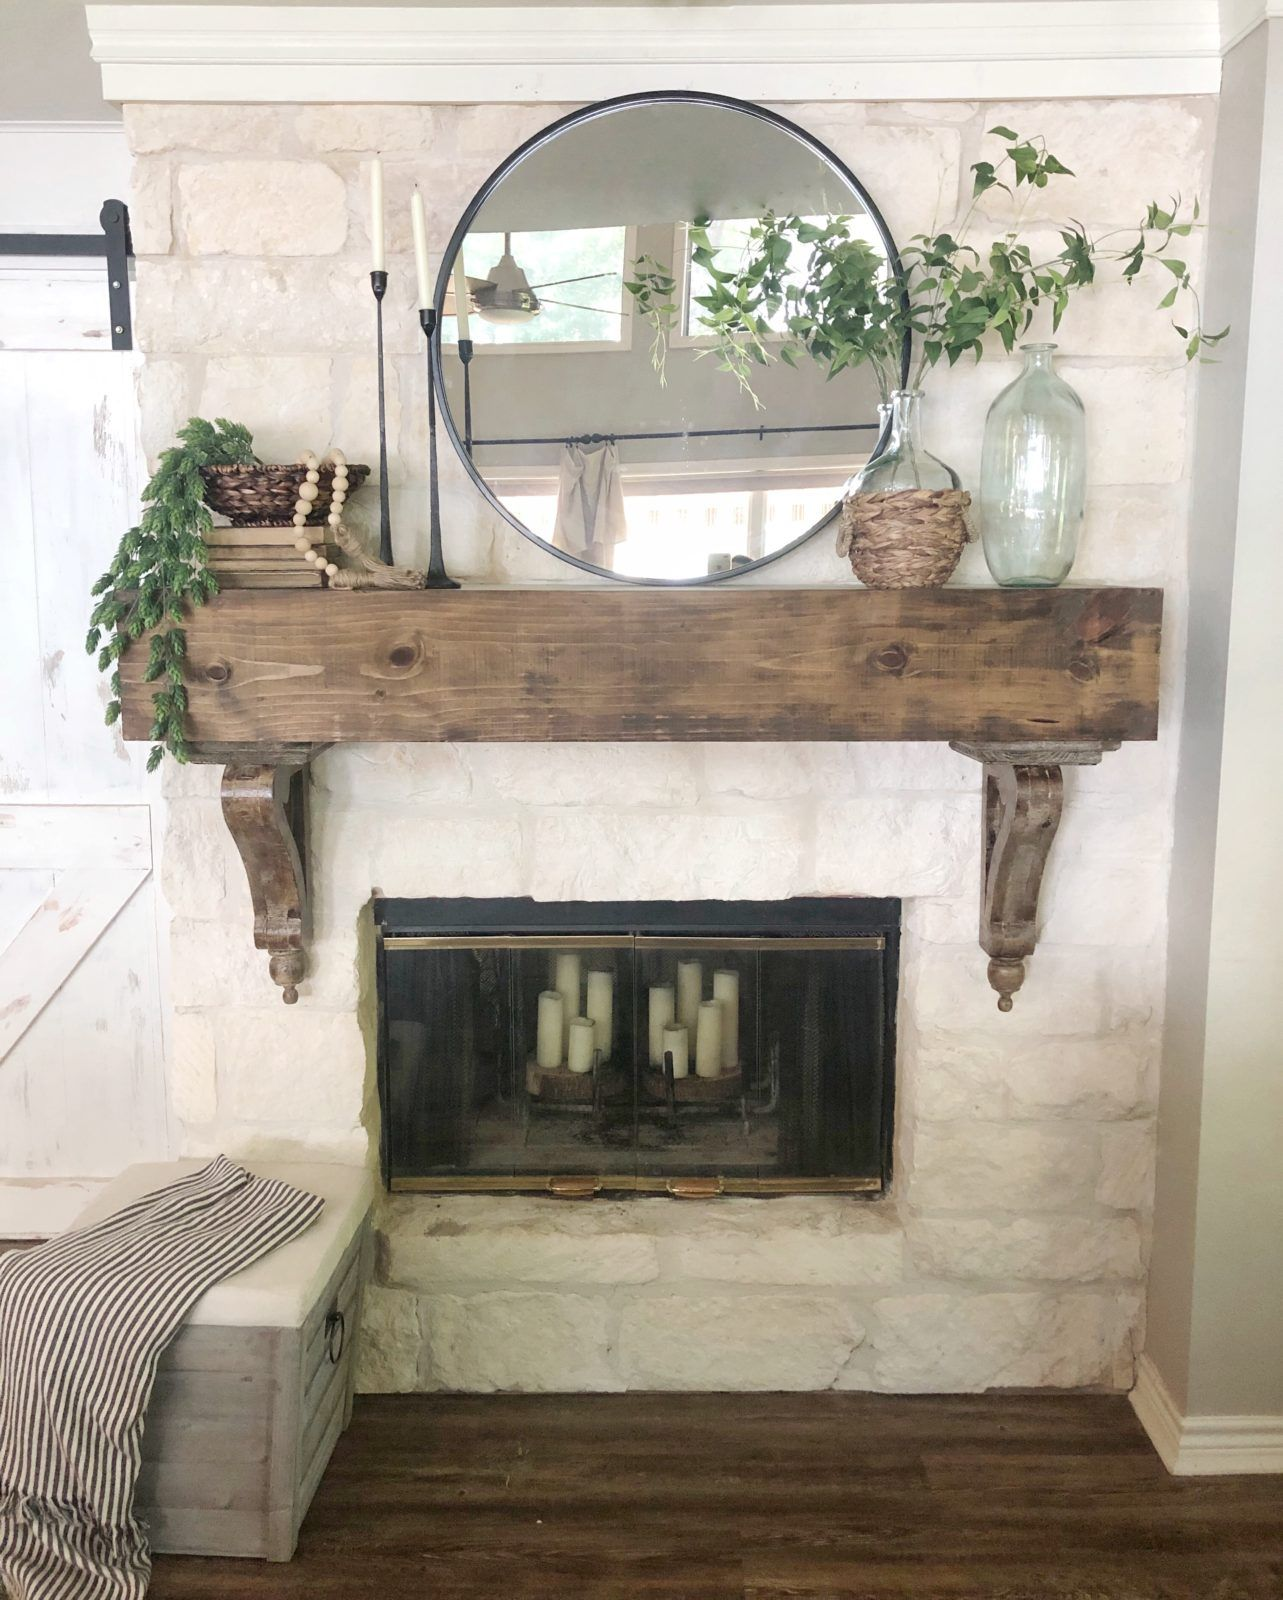 Home Decor Trends For 2020 * Hip & Humble Style. Home trends in decor, decorating ideas, decorating your home, mantel ideas, fireplace inspiration, DIY mantel, rustic mantel. #hipandhumblestyle #homedecorideas